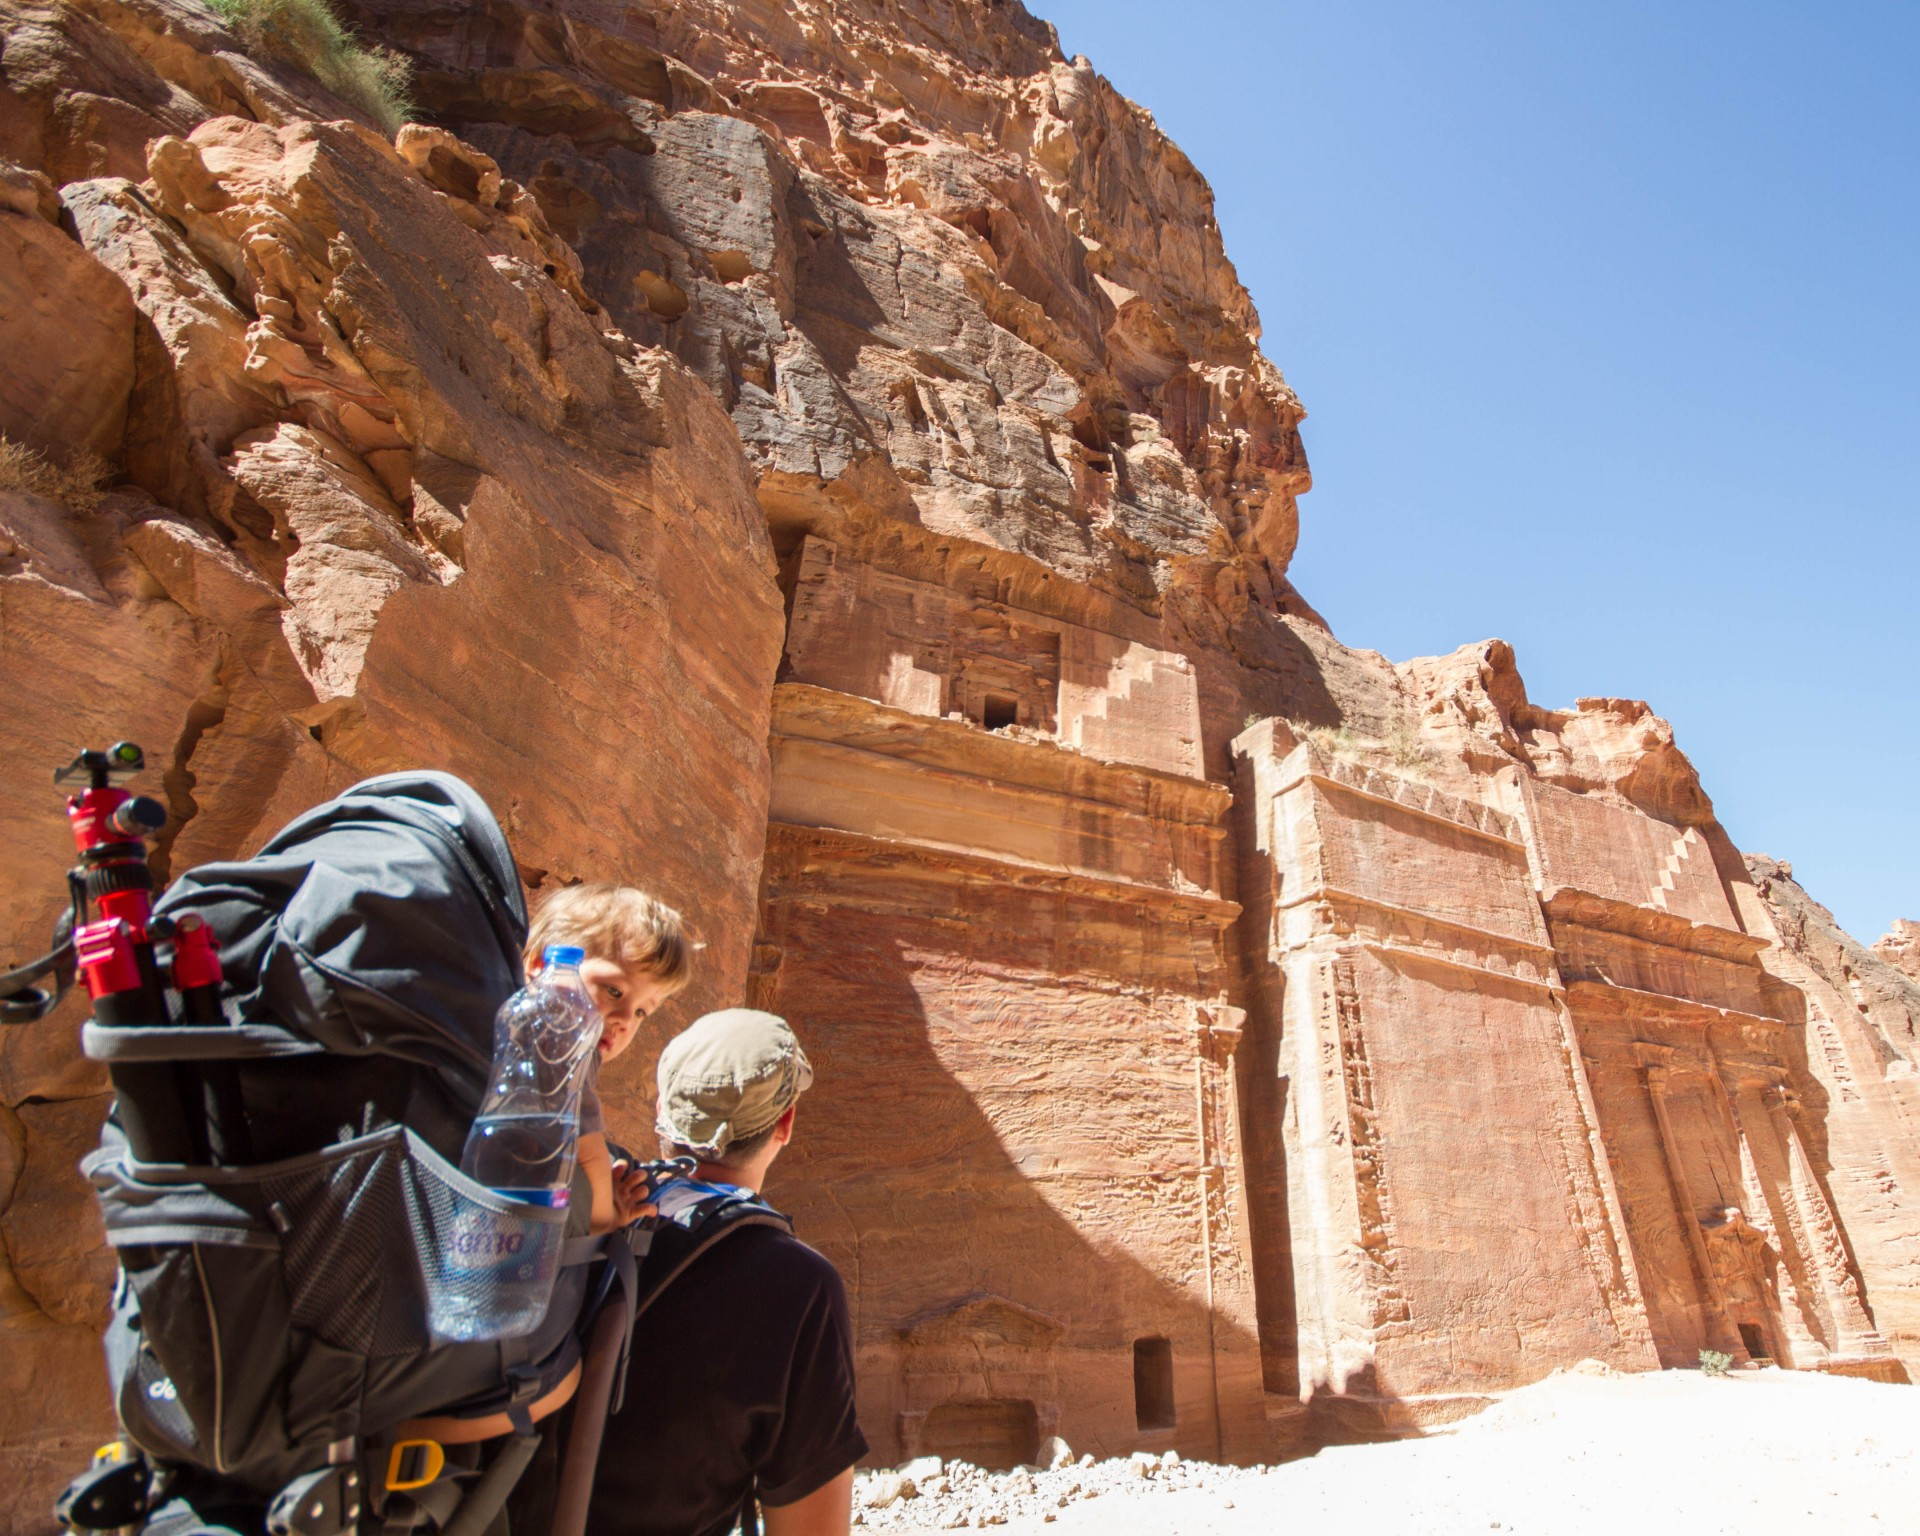 Child looks at the camera from inside a Deuter Kid Comfort III Kid Carrier while his father hikes through Petra Jordan